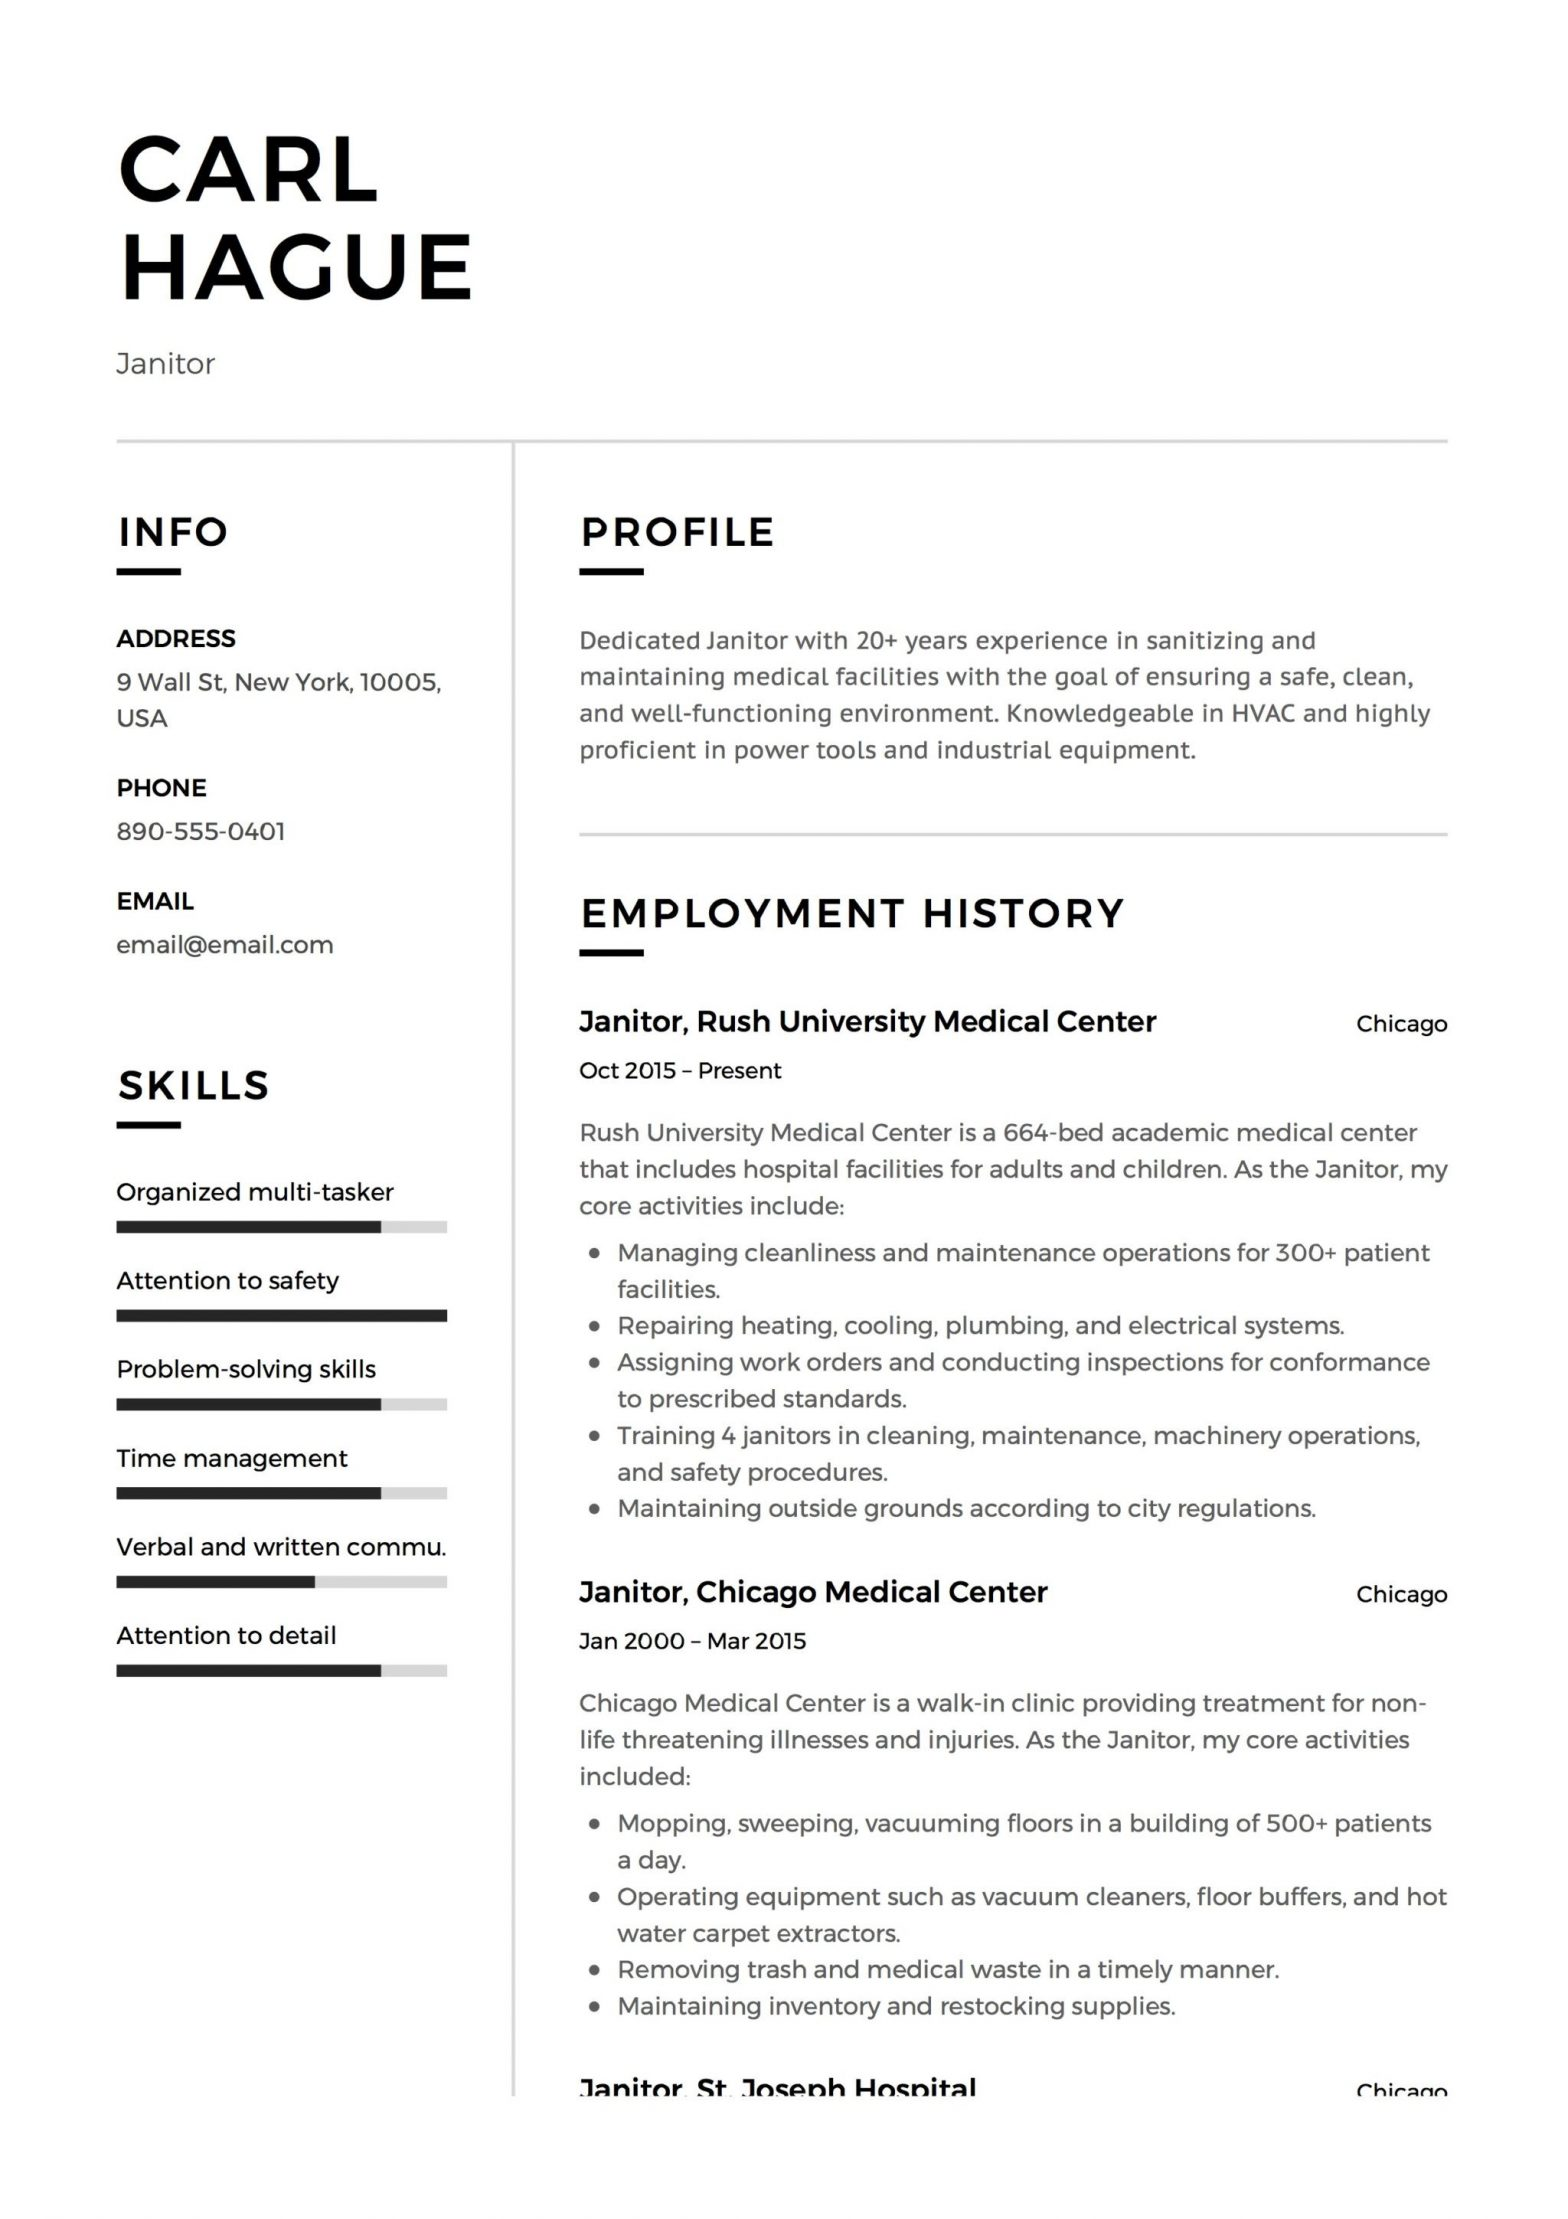 Sample Resume Objective for Janitorial Position Janitor Resume October 2021